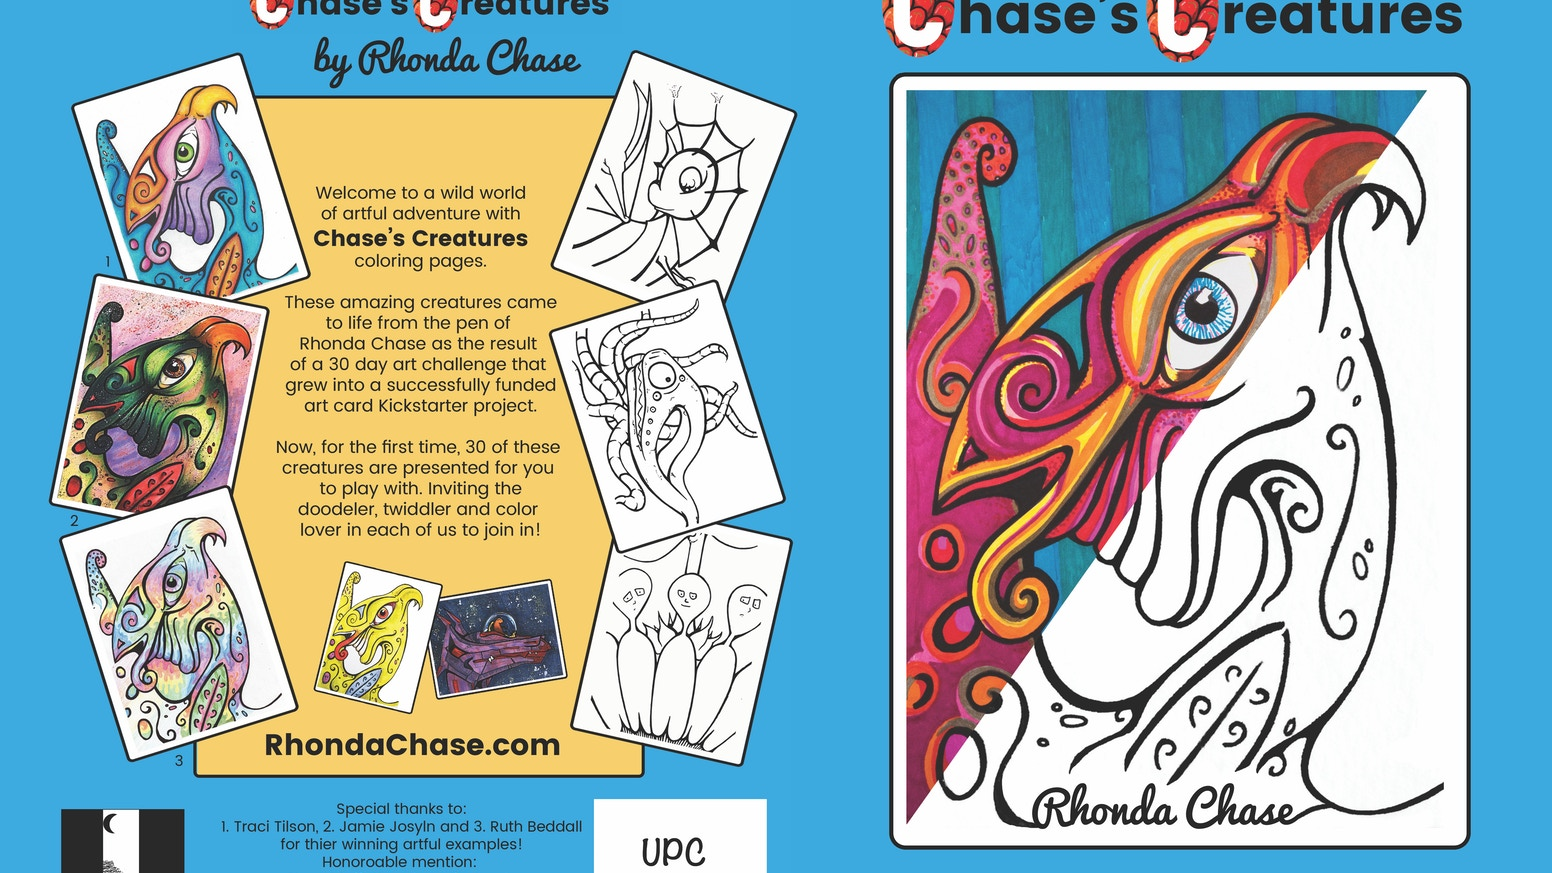 Color Your Way Through The Whimsical World Of Chases Creatures In First Ever Coloring Pages